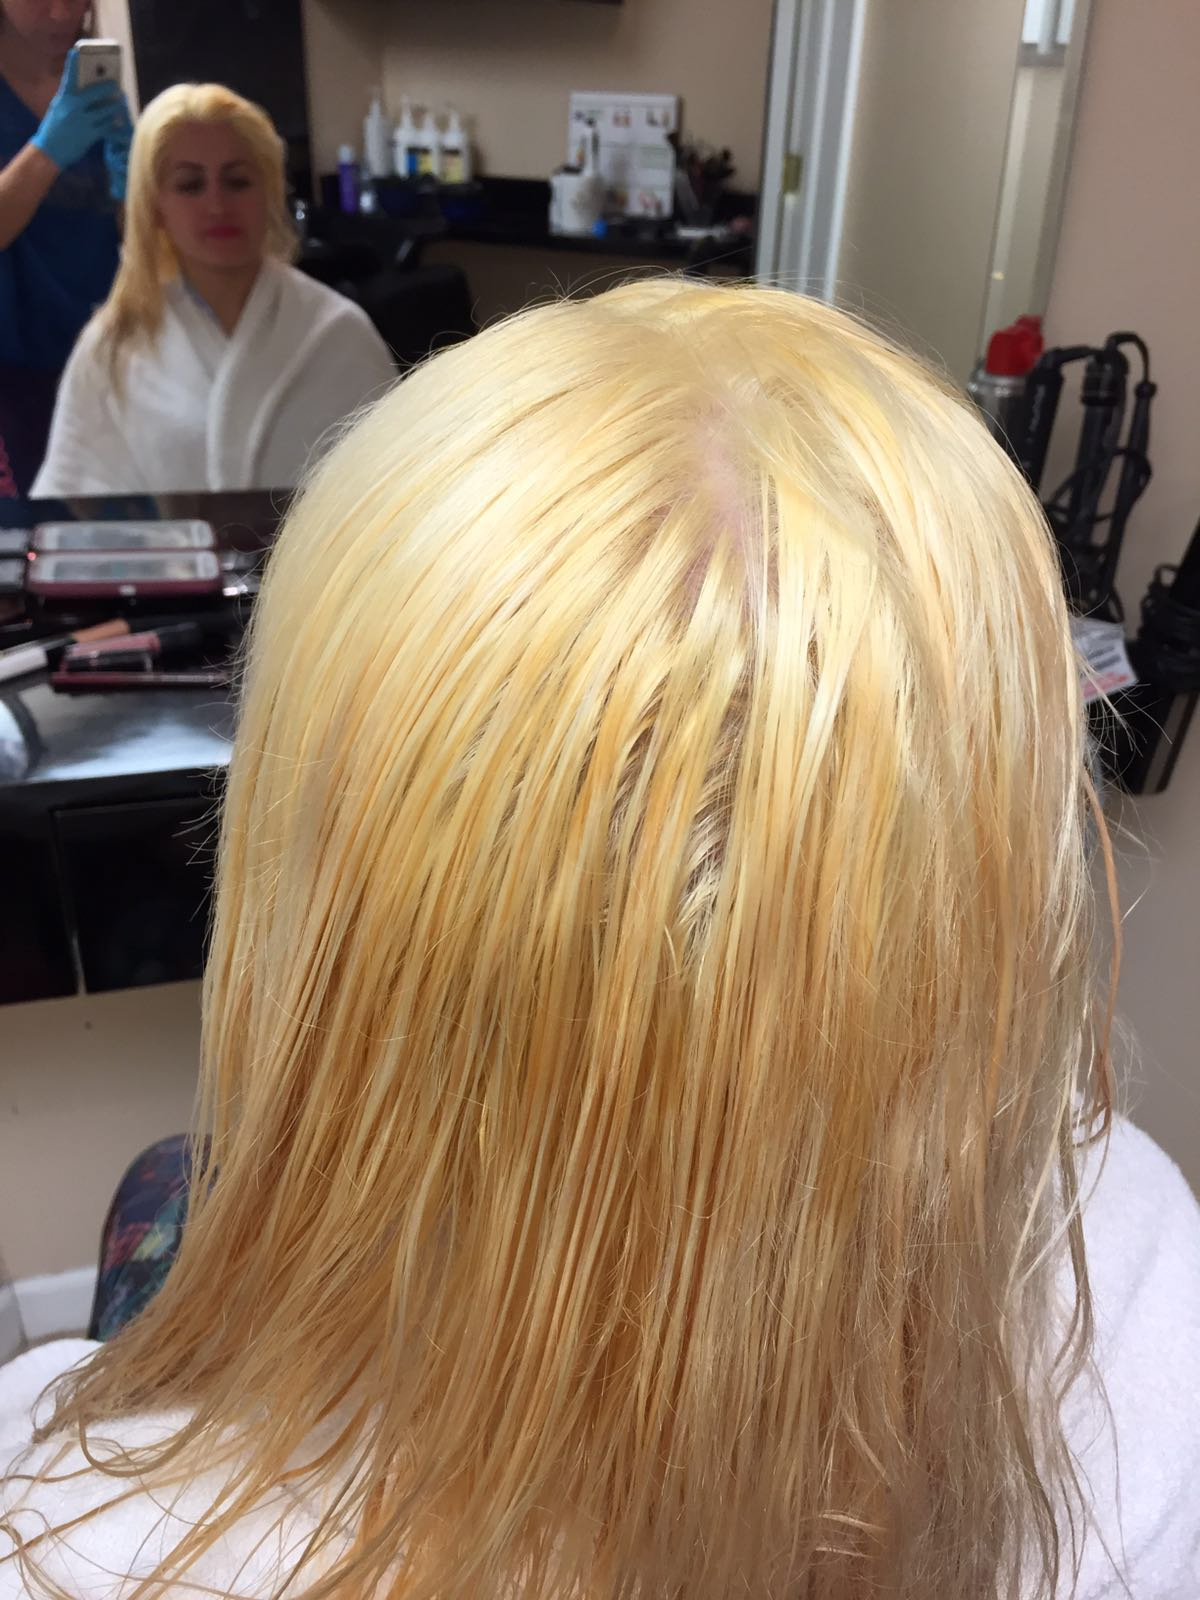 How to Bleach Hair Without Damaging it - Are You Getting